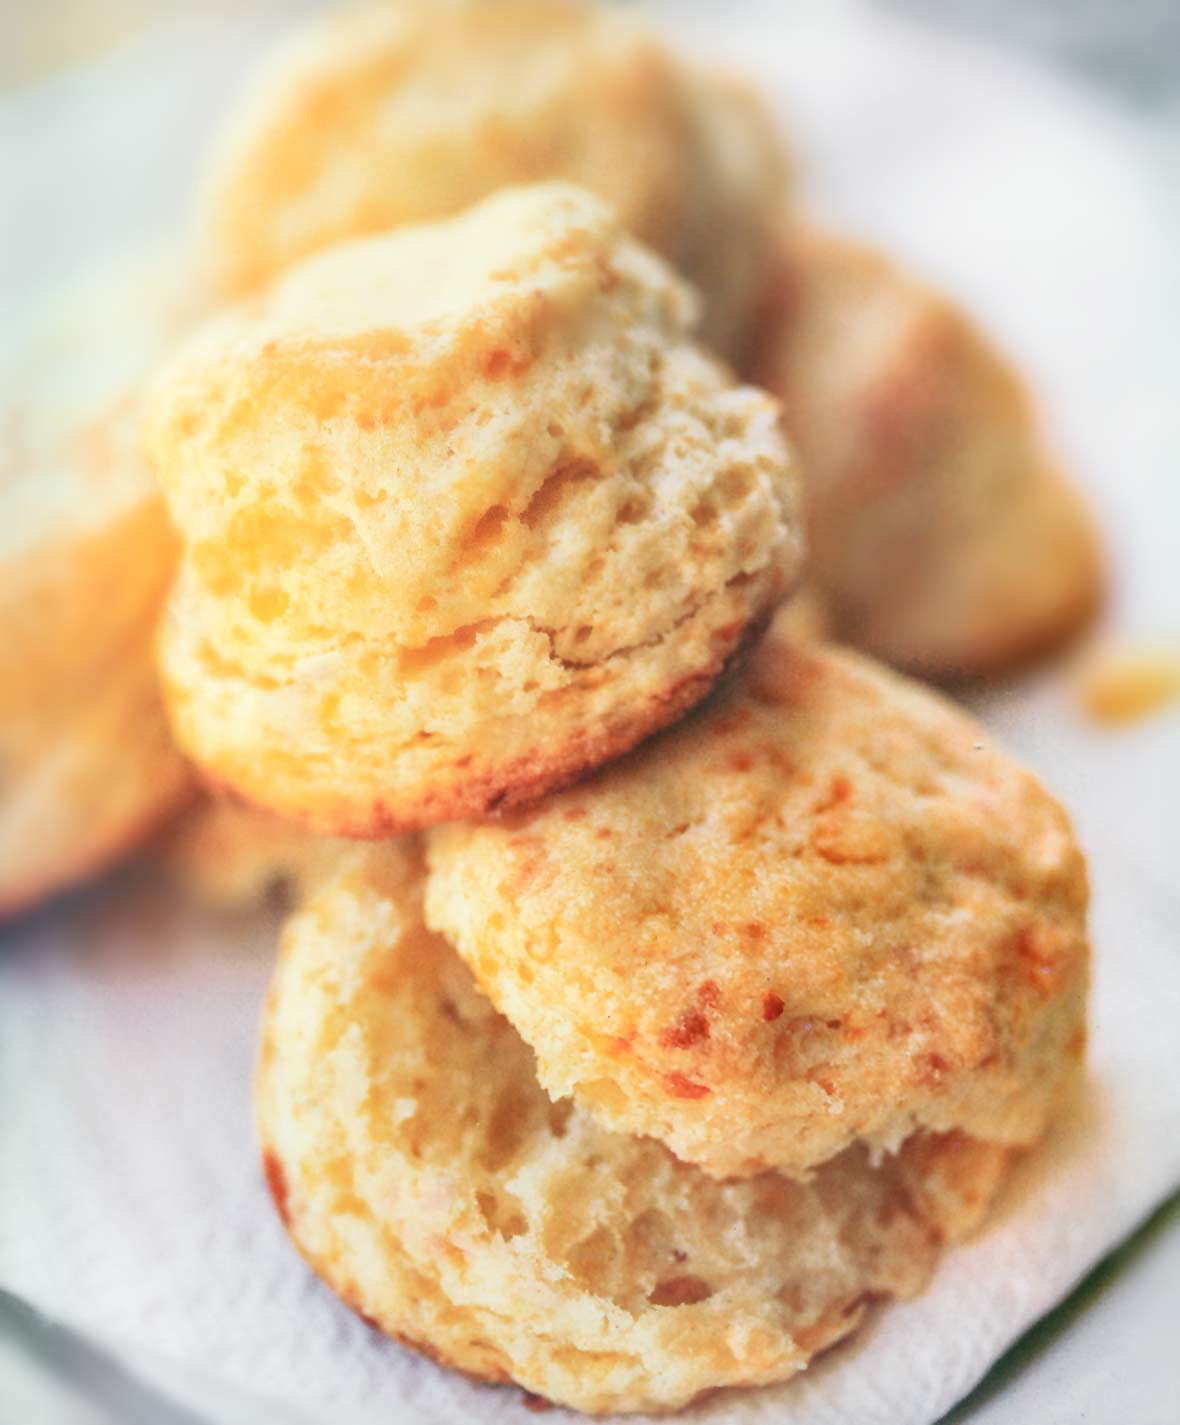 A pile of baking powder biscuits on a white paper napkin